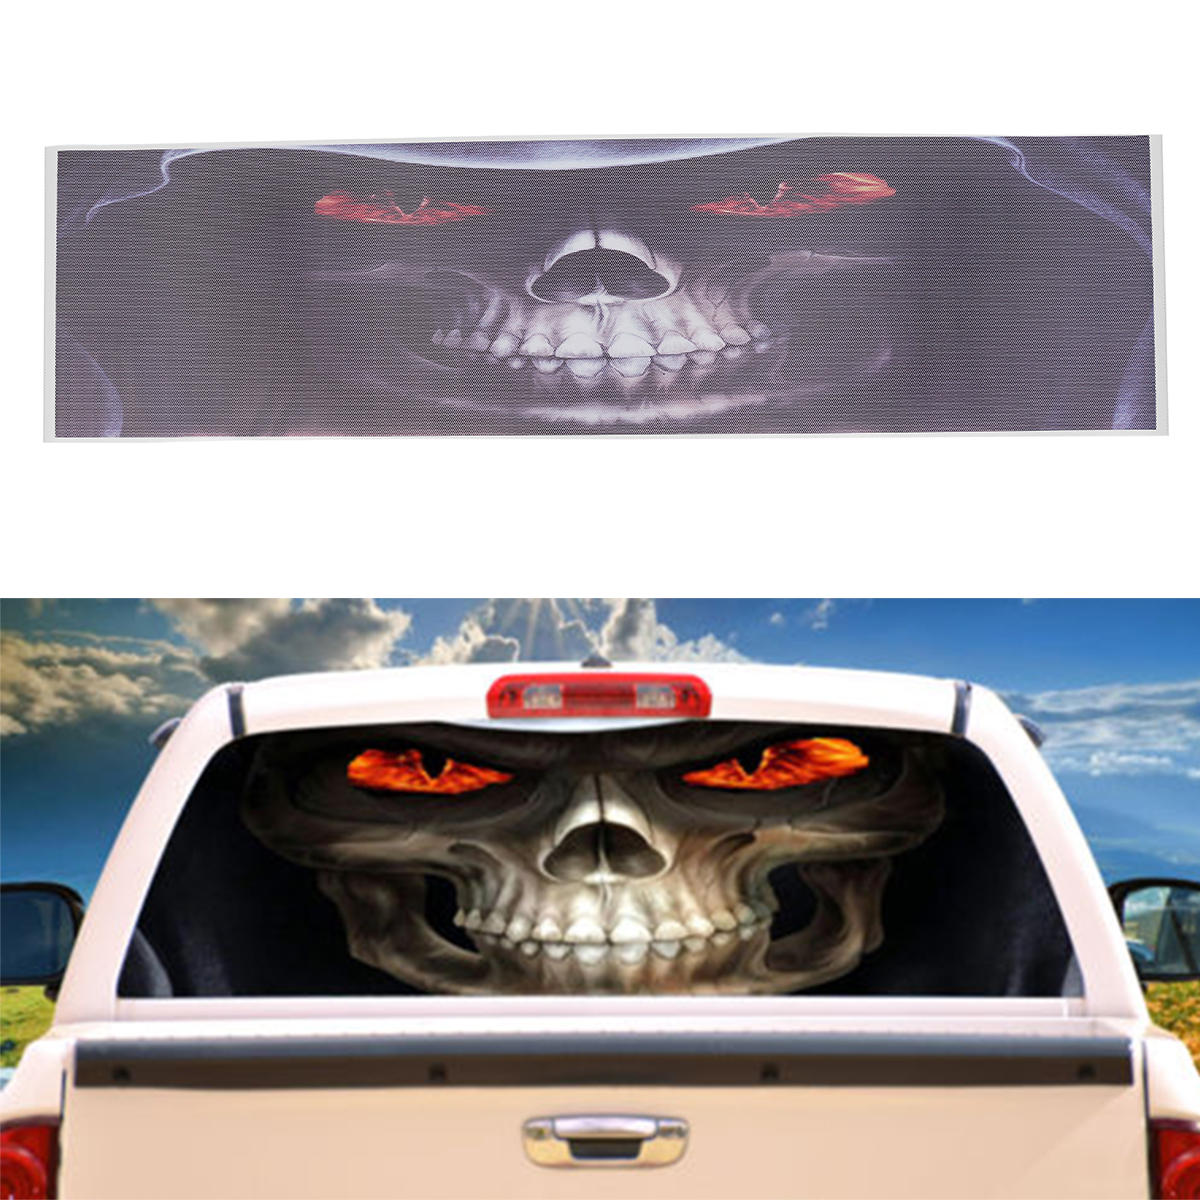 Grim Reaper Car Rear Window Graphic Decal Stickers For Truck Suv Van Cod